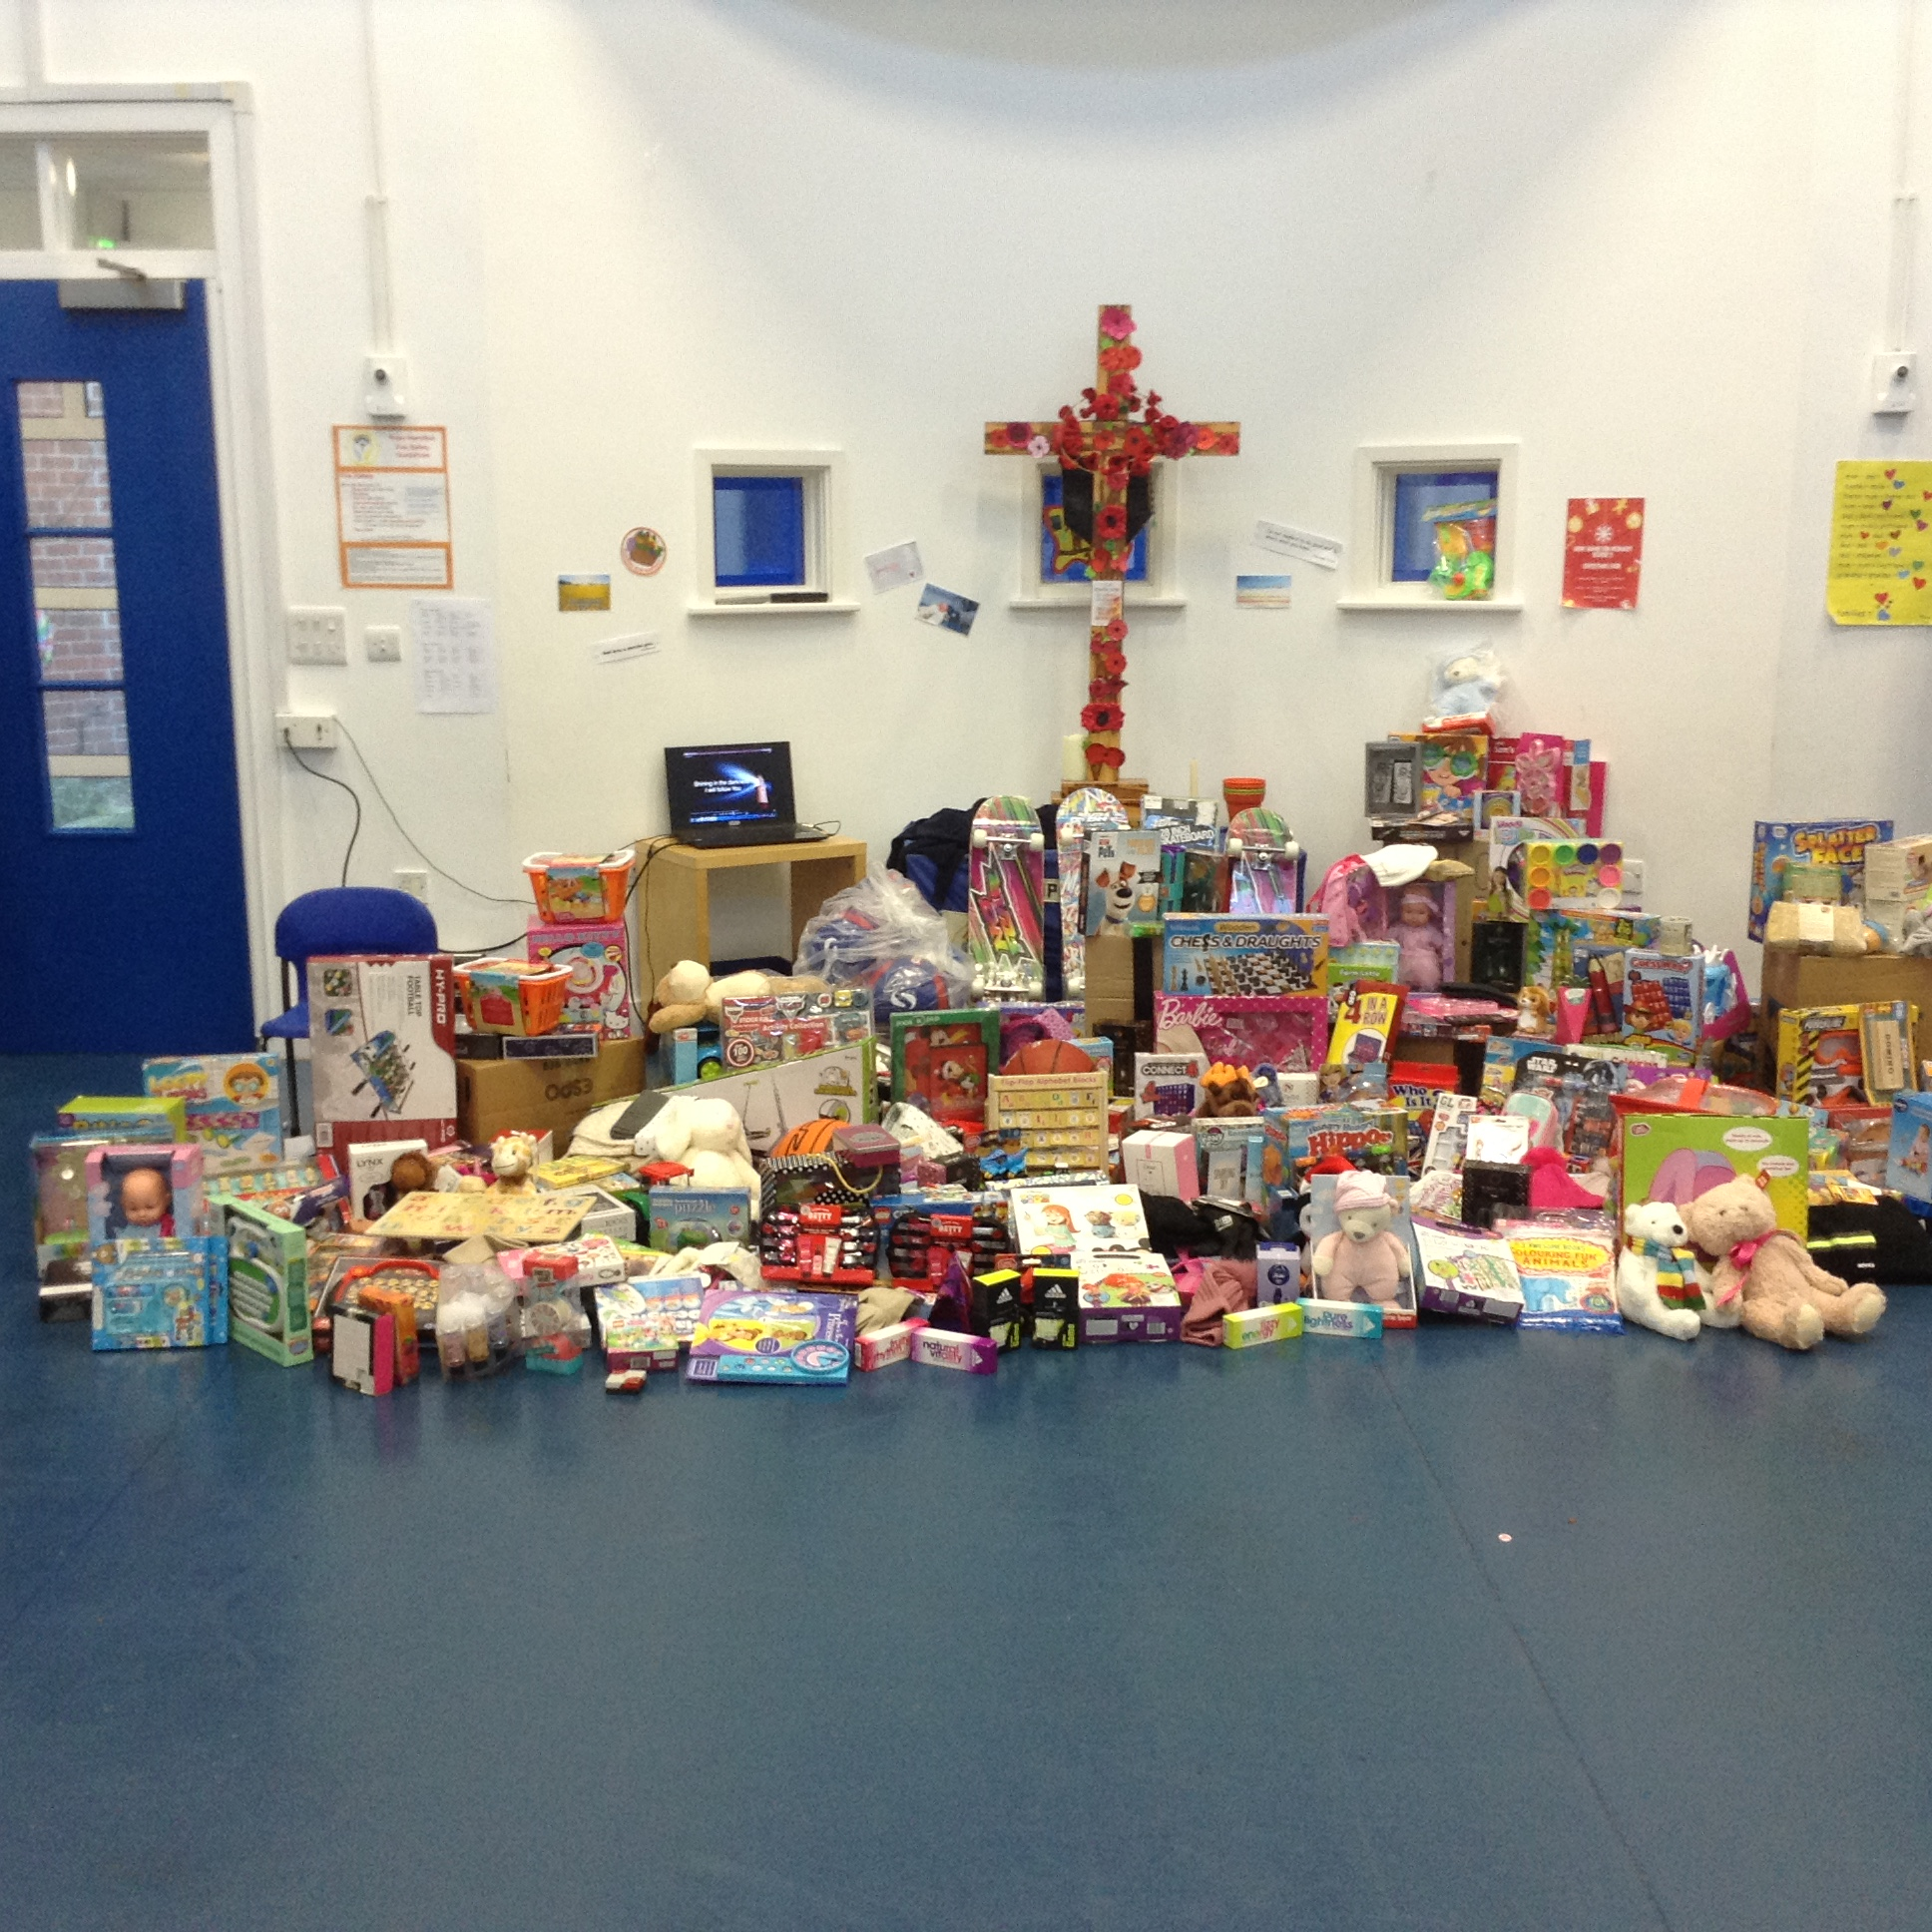 280 Toys and Gifts at Hope Hamilton CE Primary School